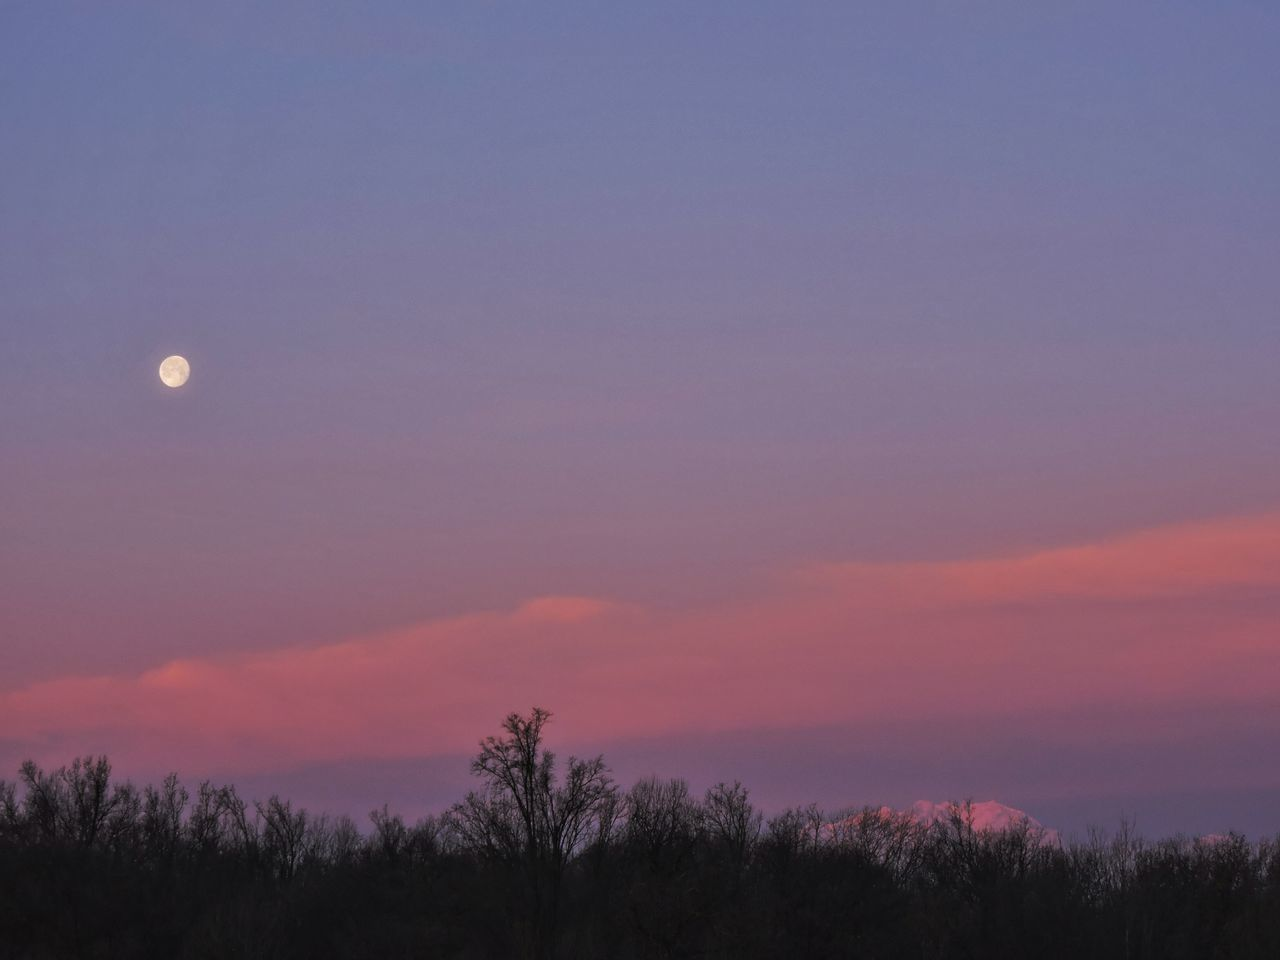 moon, sunset, scenics, beauty in nature, nature, tranquil scene, sky, tranquility, outdoors, no people, silhouette, night, tree, landscape, half moon, crescent, astronomy